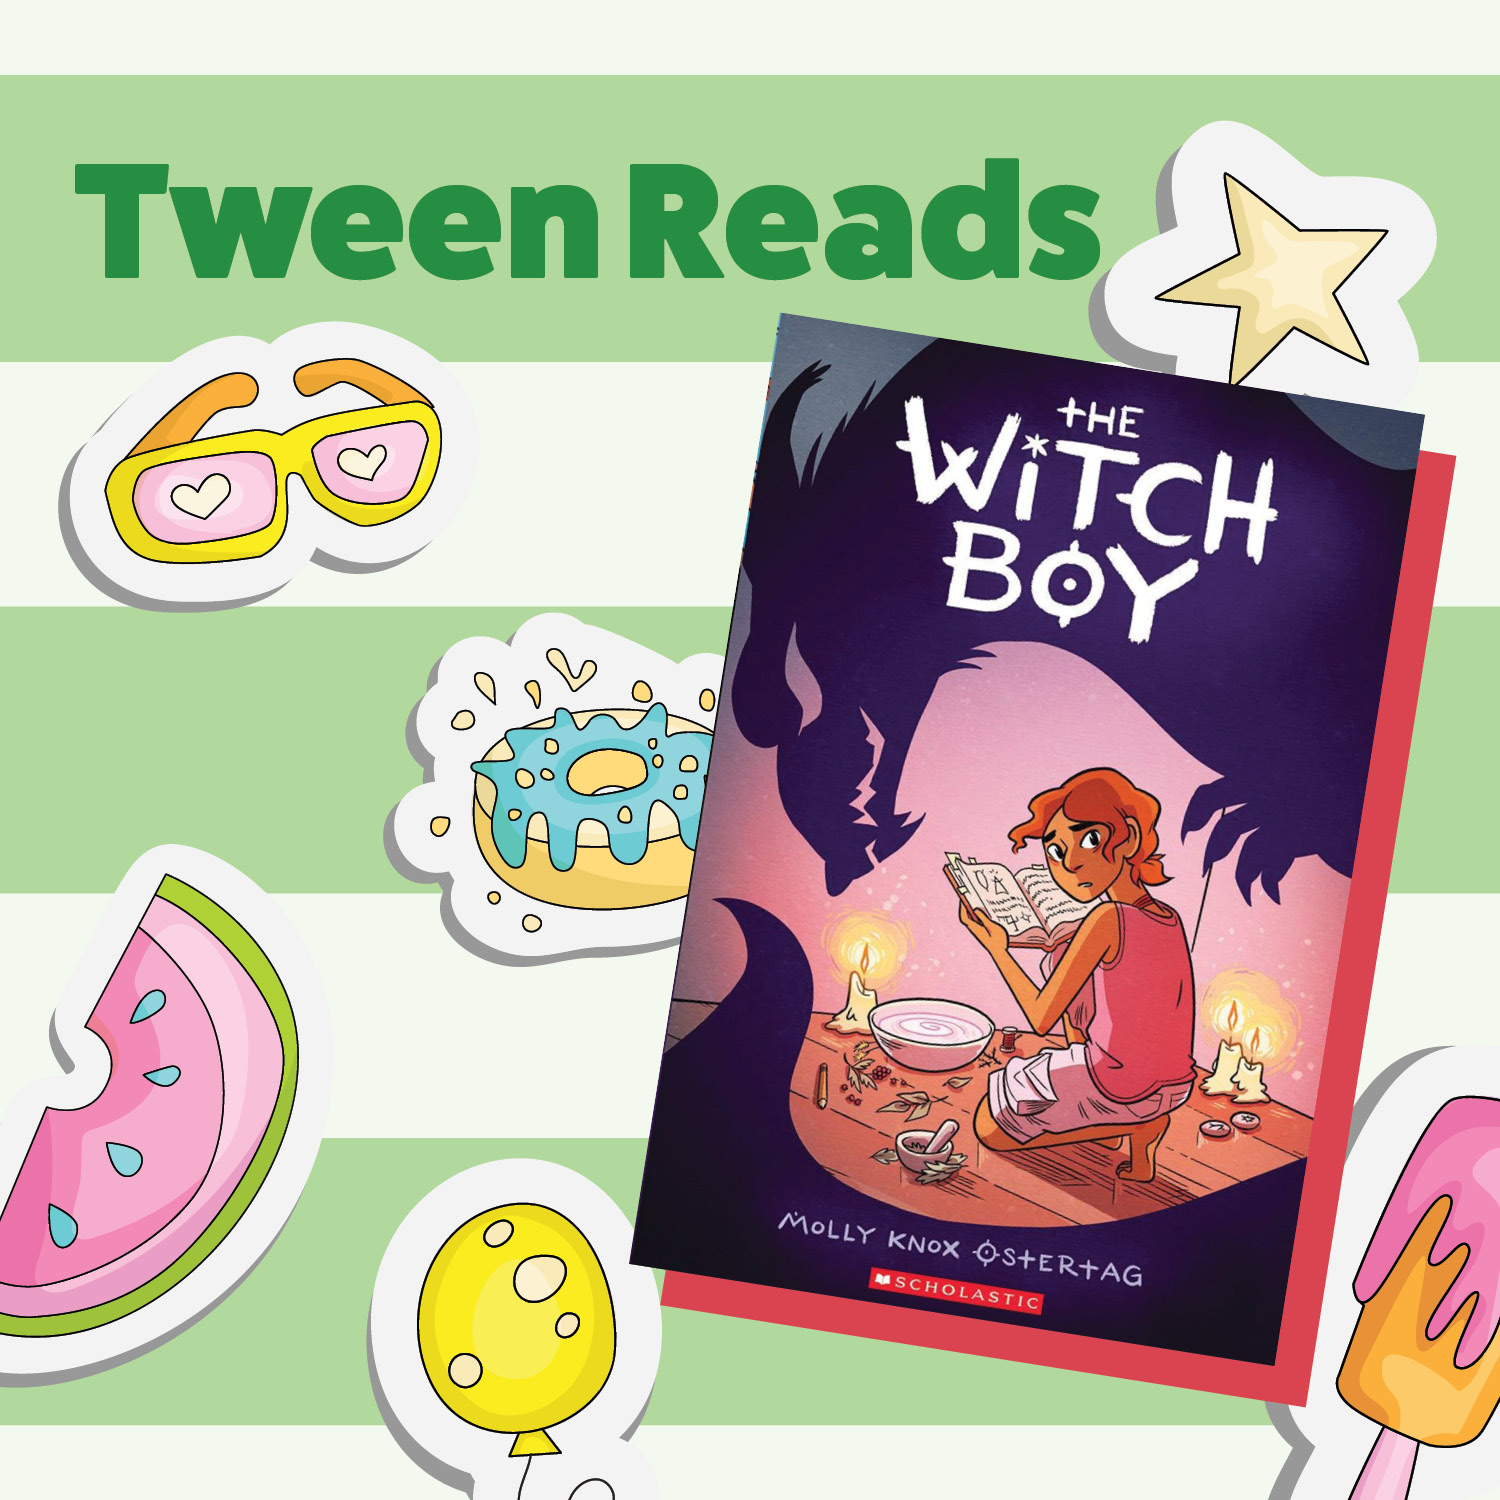 Tween Reads: The Witch Boy